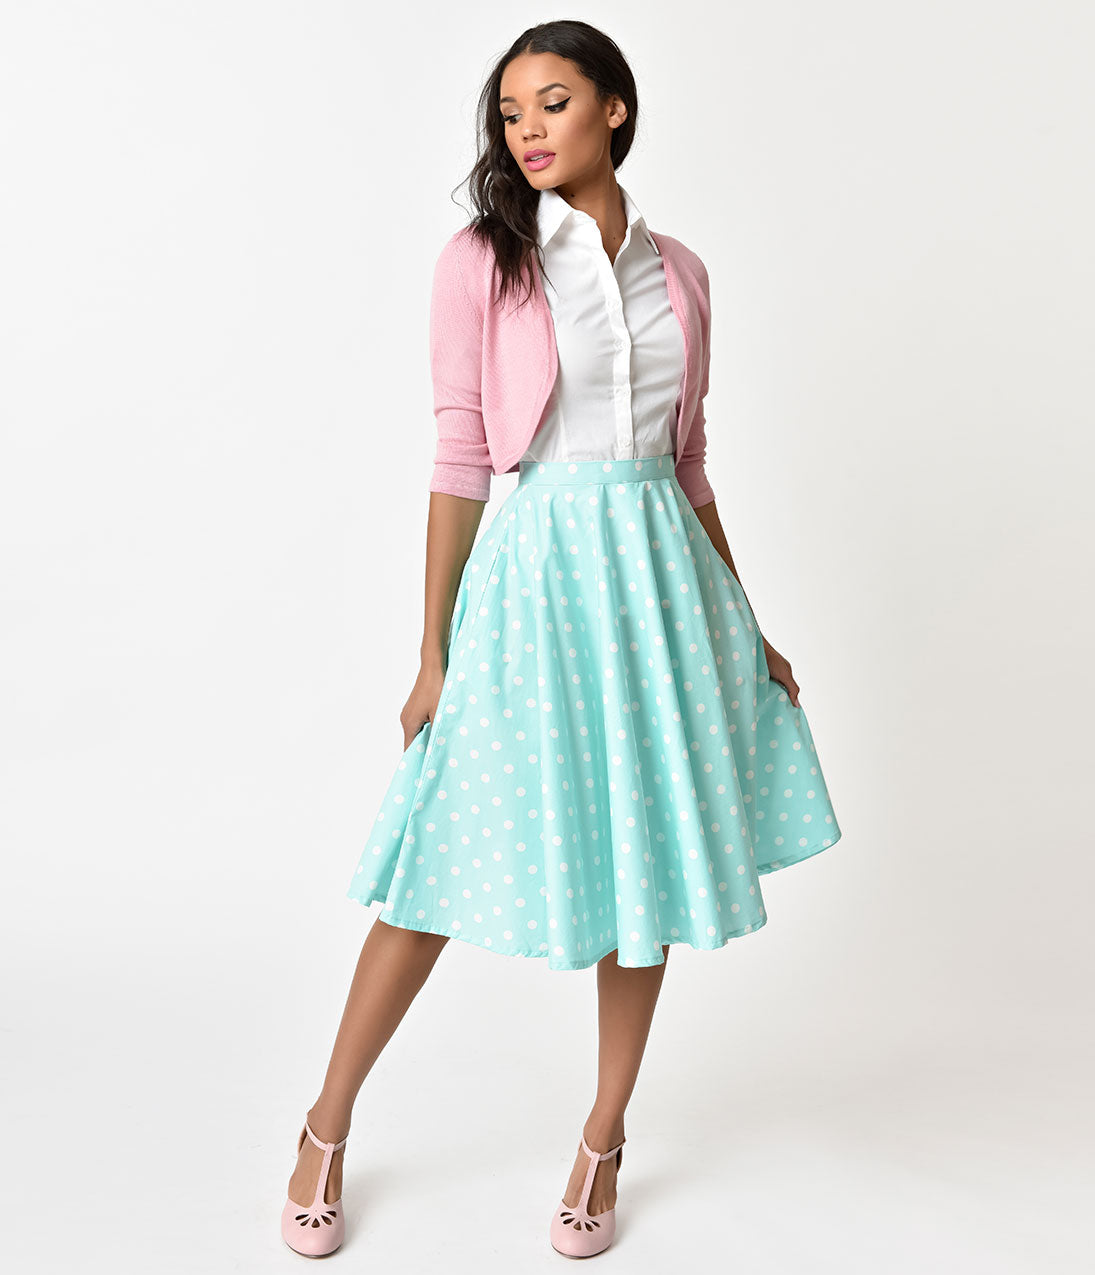 Retro Skirts: Vintage, Pencil, Circle, & Plus Sizes Vintage Style Mint  White Polka Dot Cotton Circle Skirt $42.00 AT vintagedancer.com